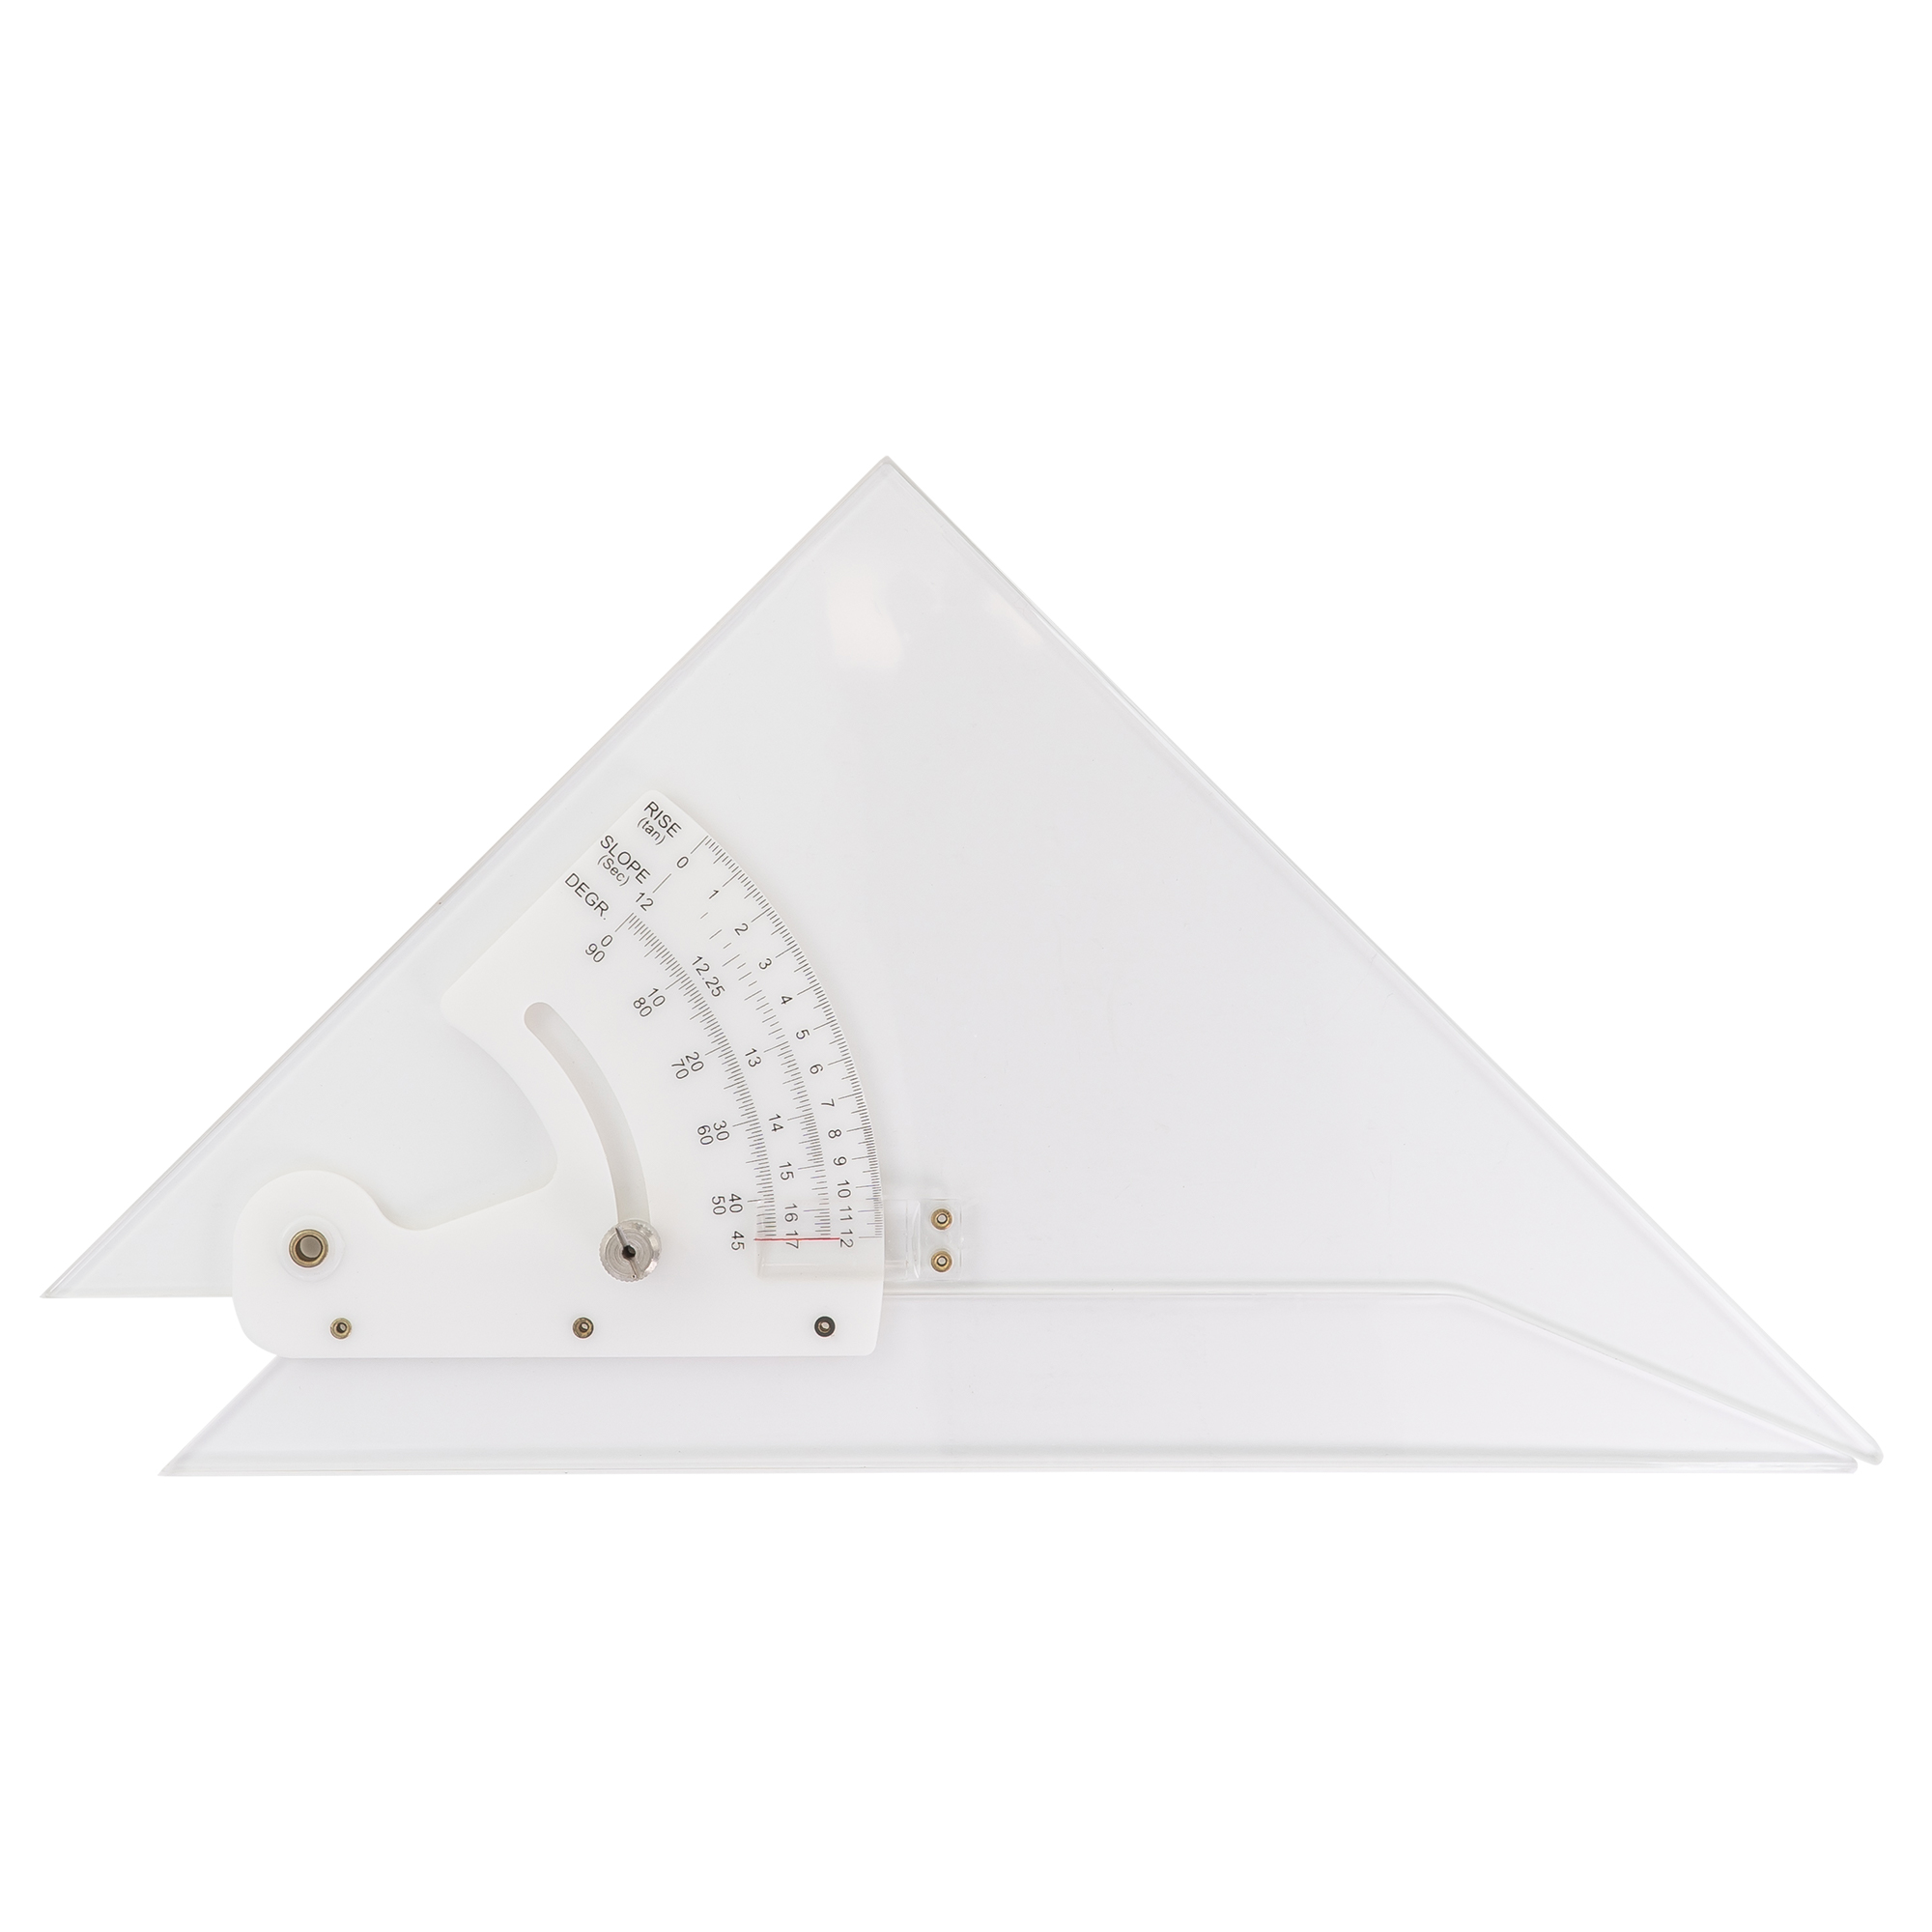 Adjustable hard professional acrylic drafting triangle by pacific arc